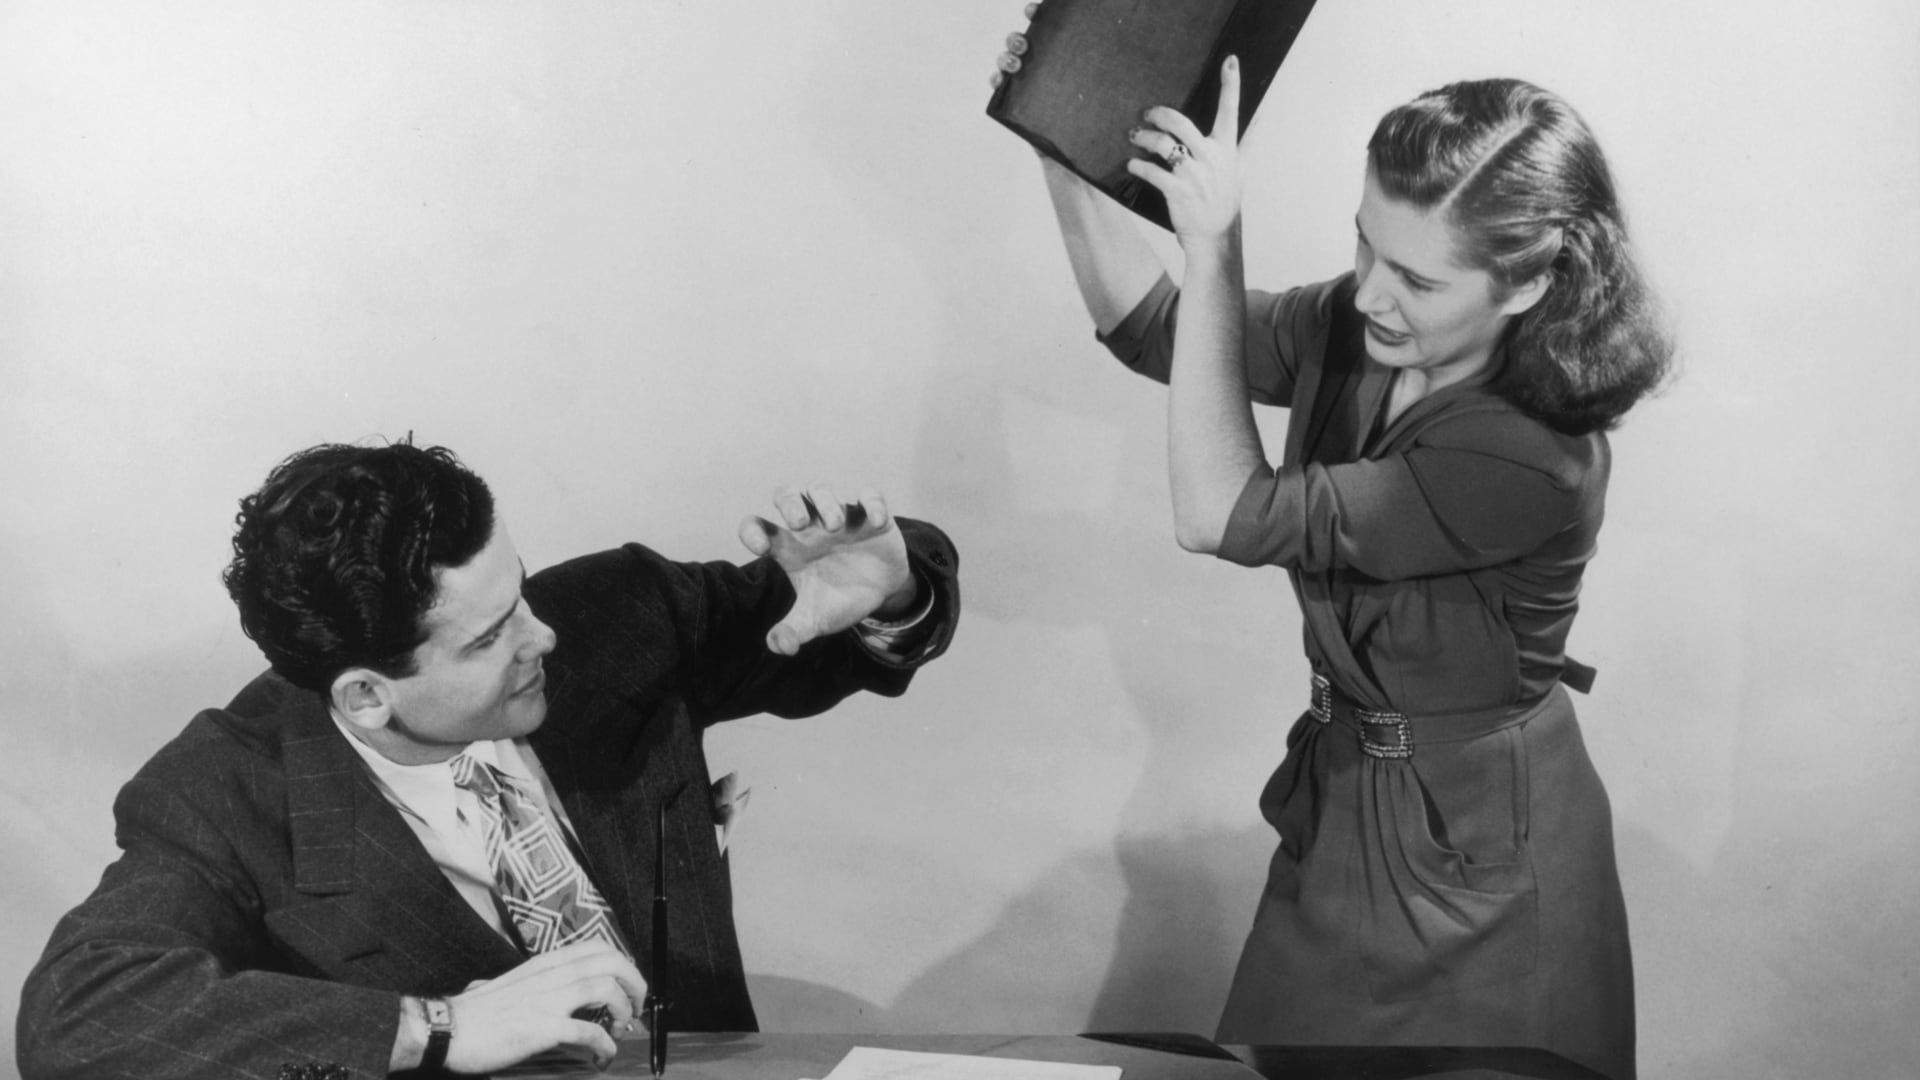 How to Deal with Difficult Co-Workers